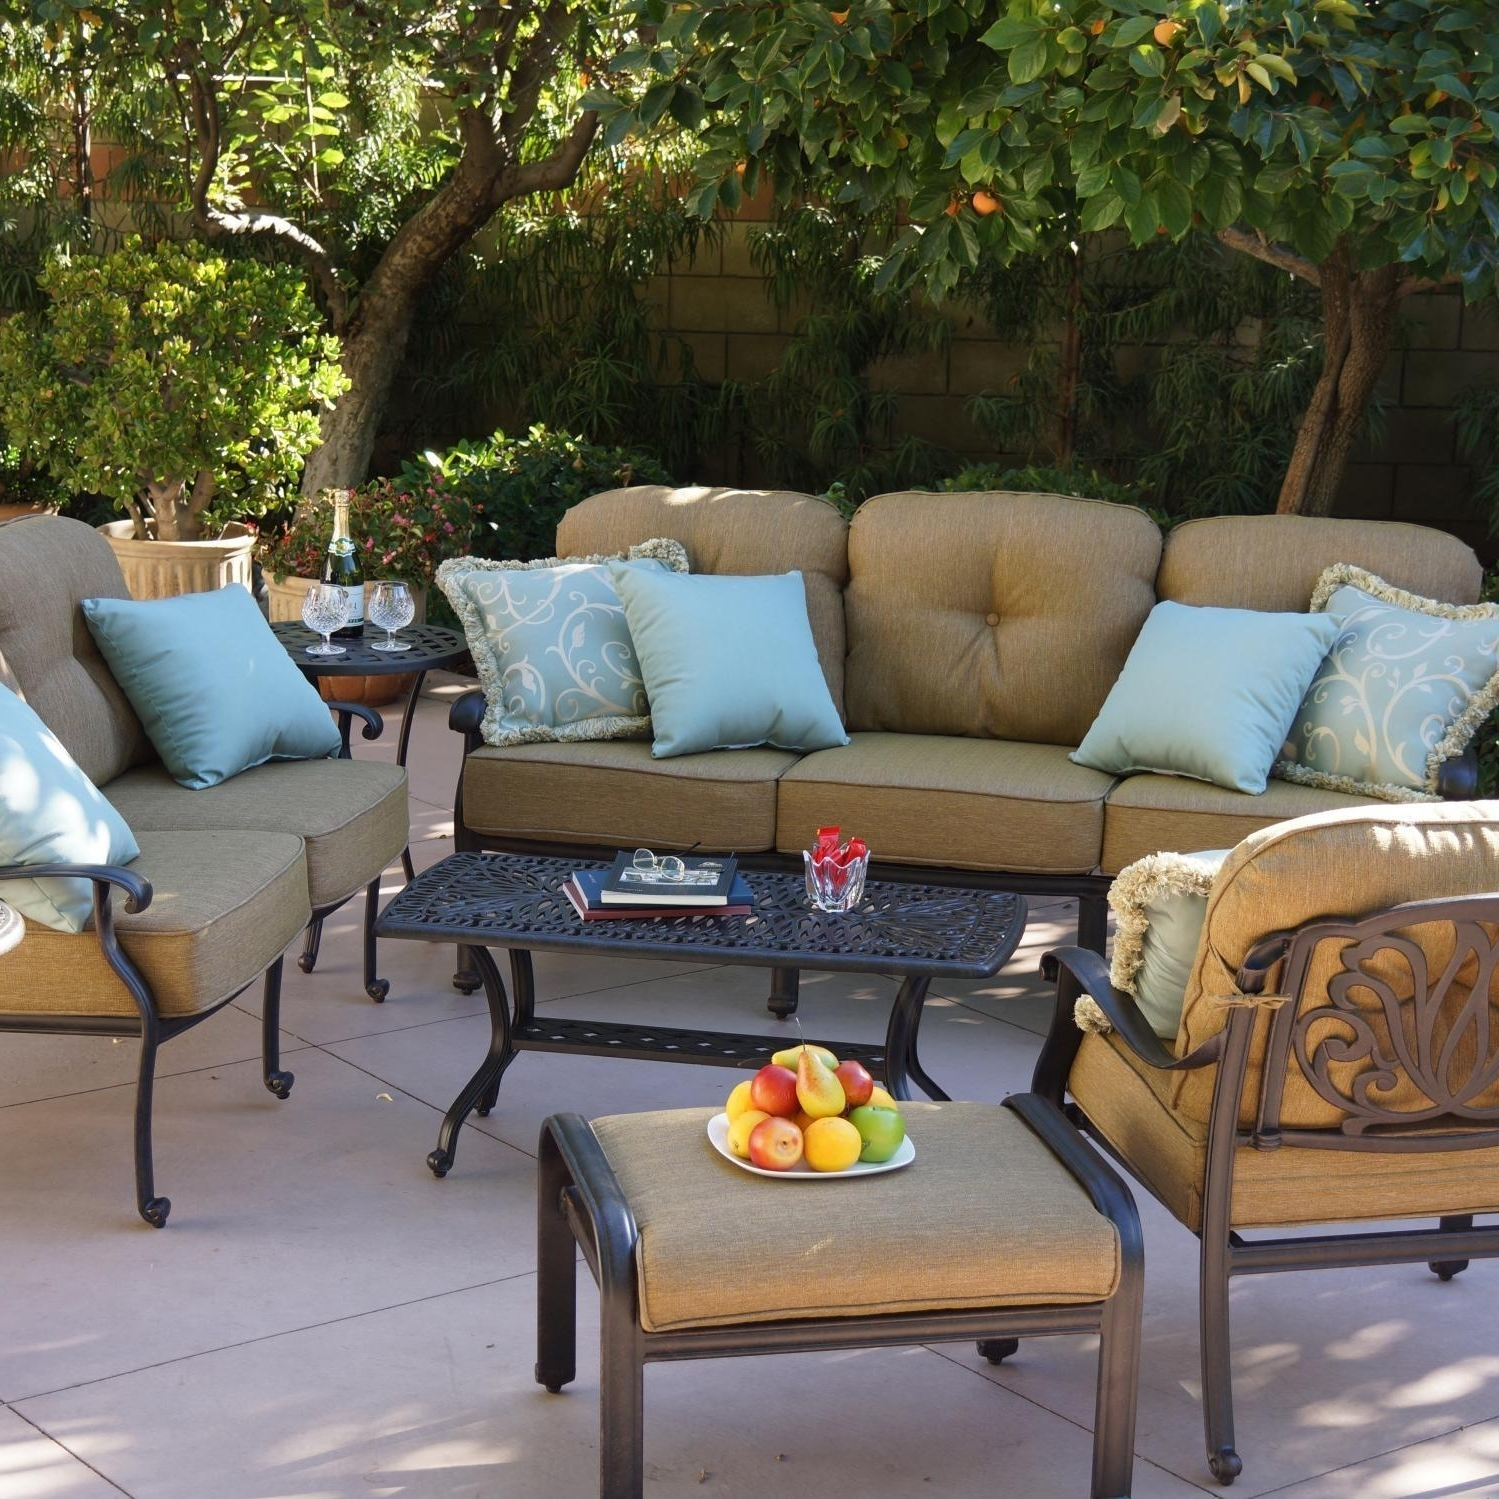 Preferred Patio Conversation Sets Without Cushions For Outdoor : Patio Sectionals For Small Spaces Patio Conversation Sets (View 4 of 15)